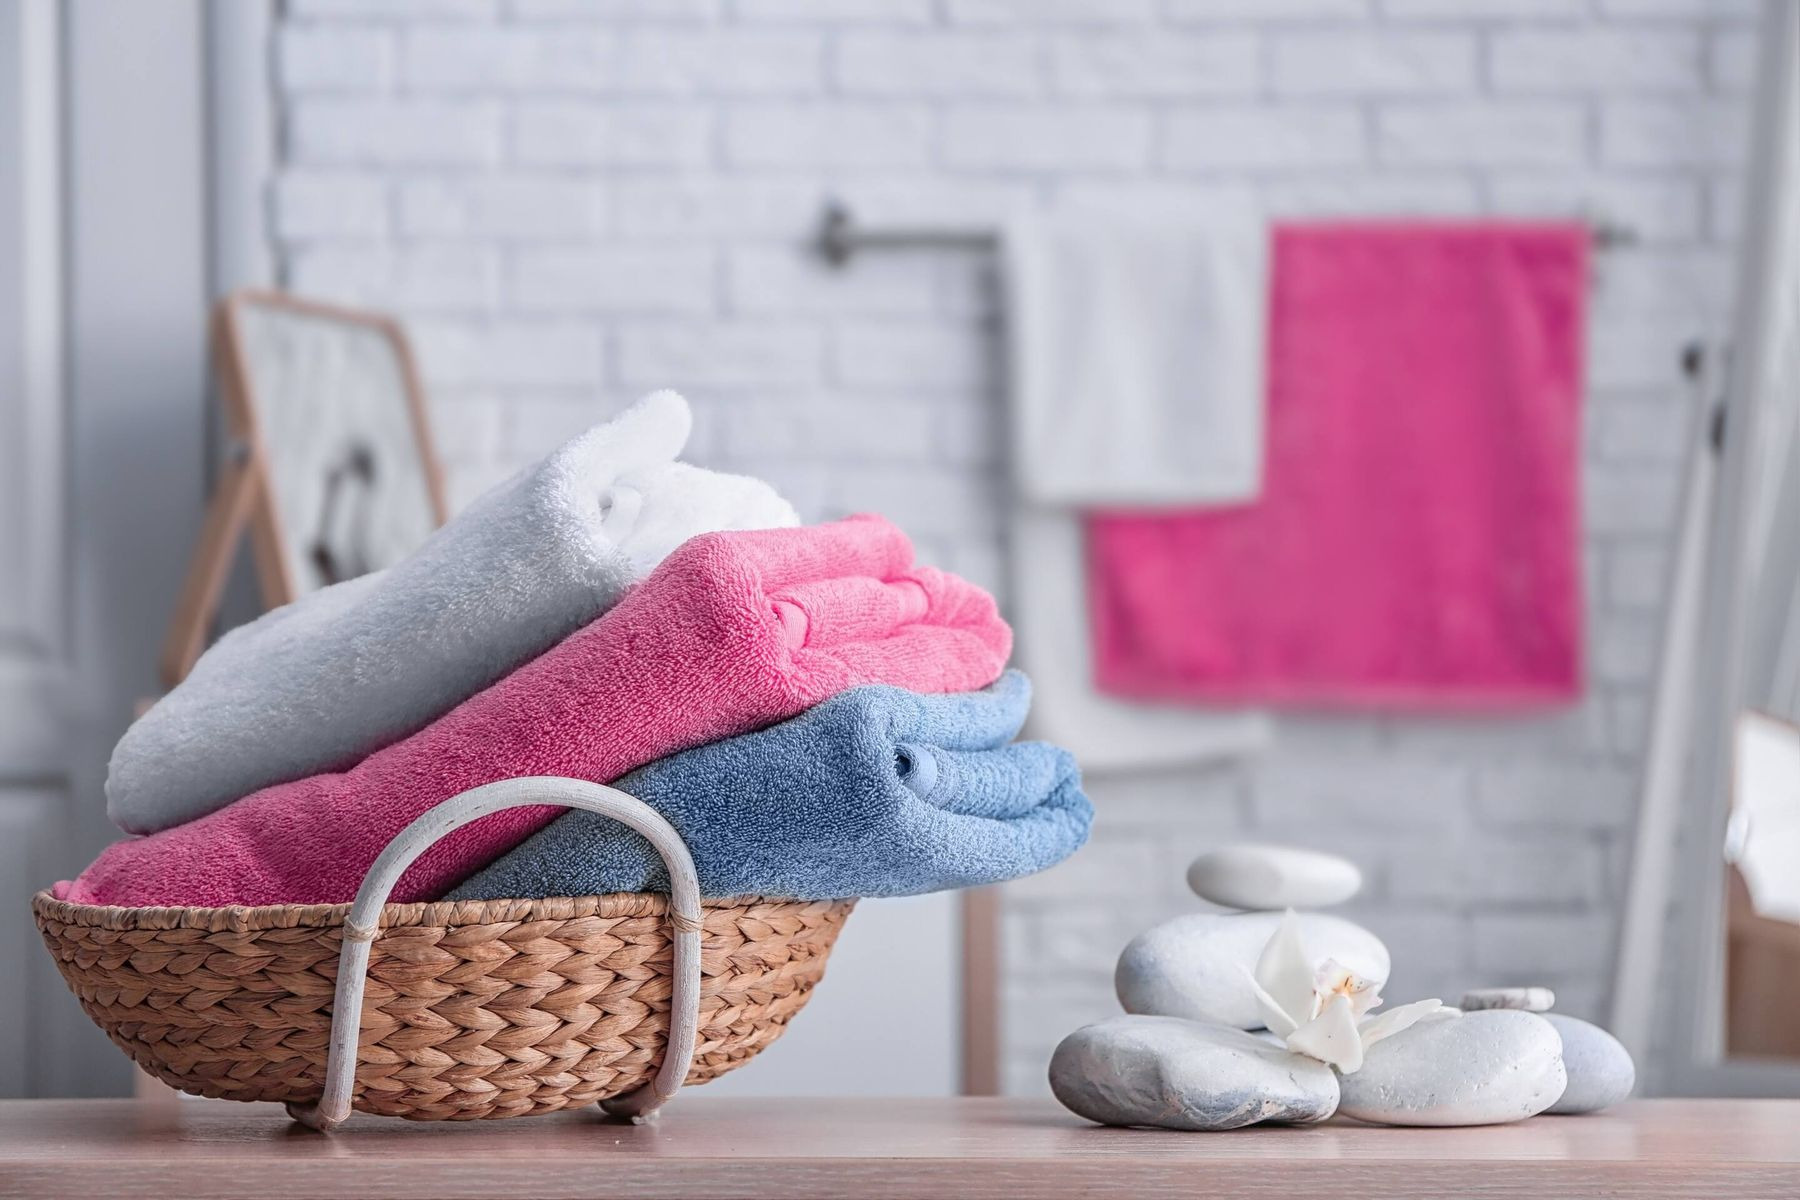 How to fold towels: basket of folded towels